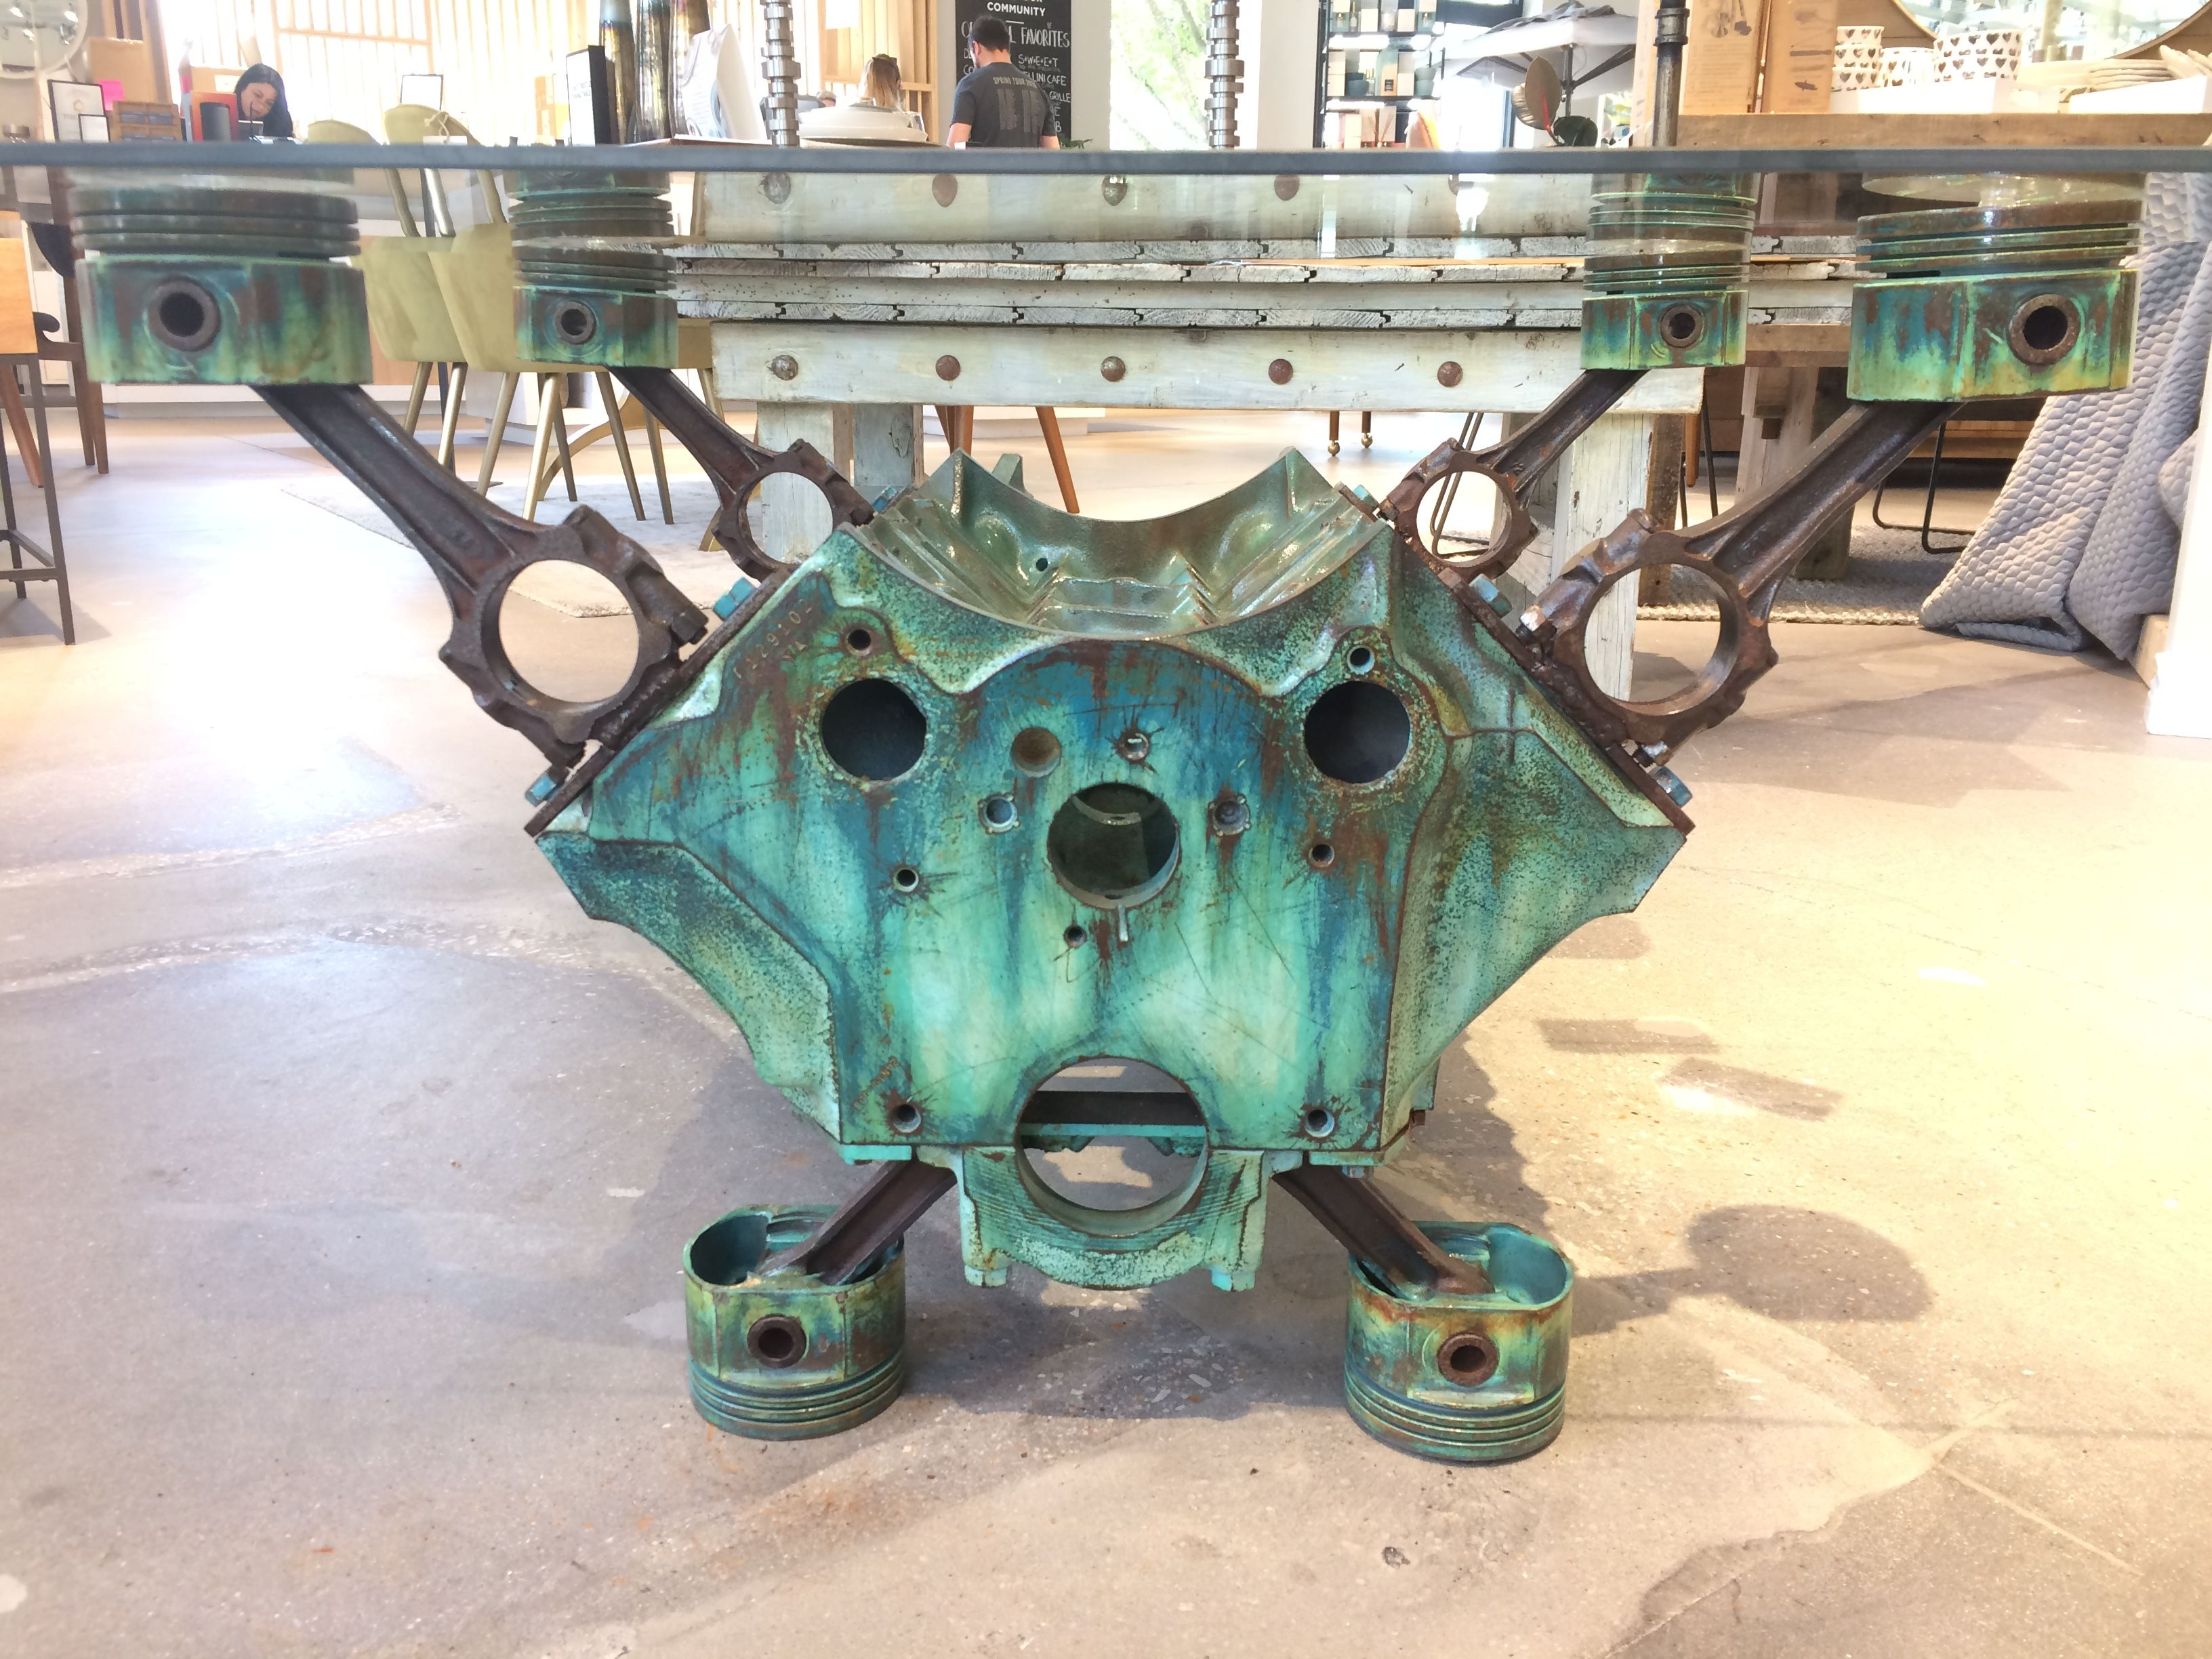 1973 Pontiac Firebird engine block coffee table in a nice green